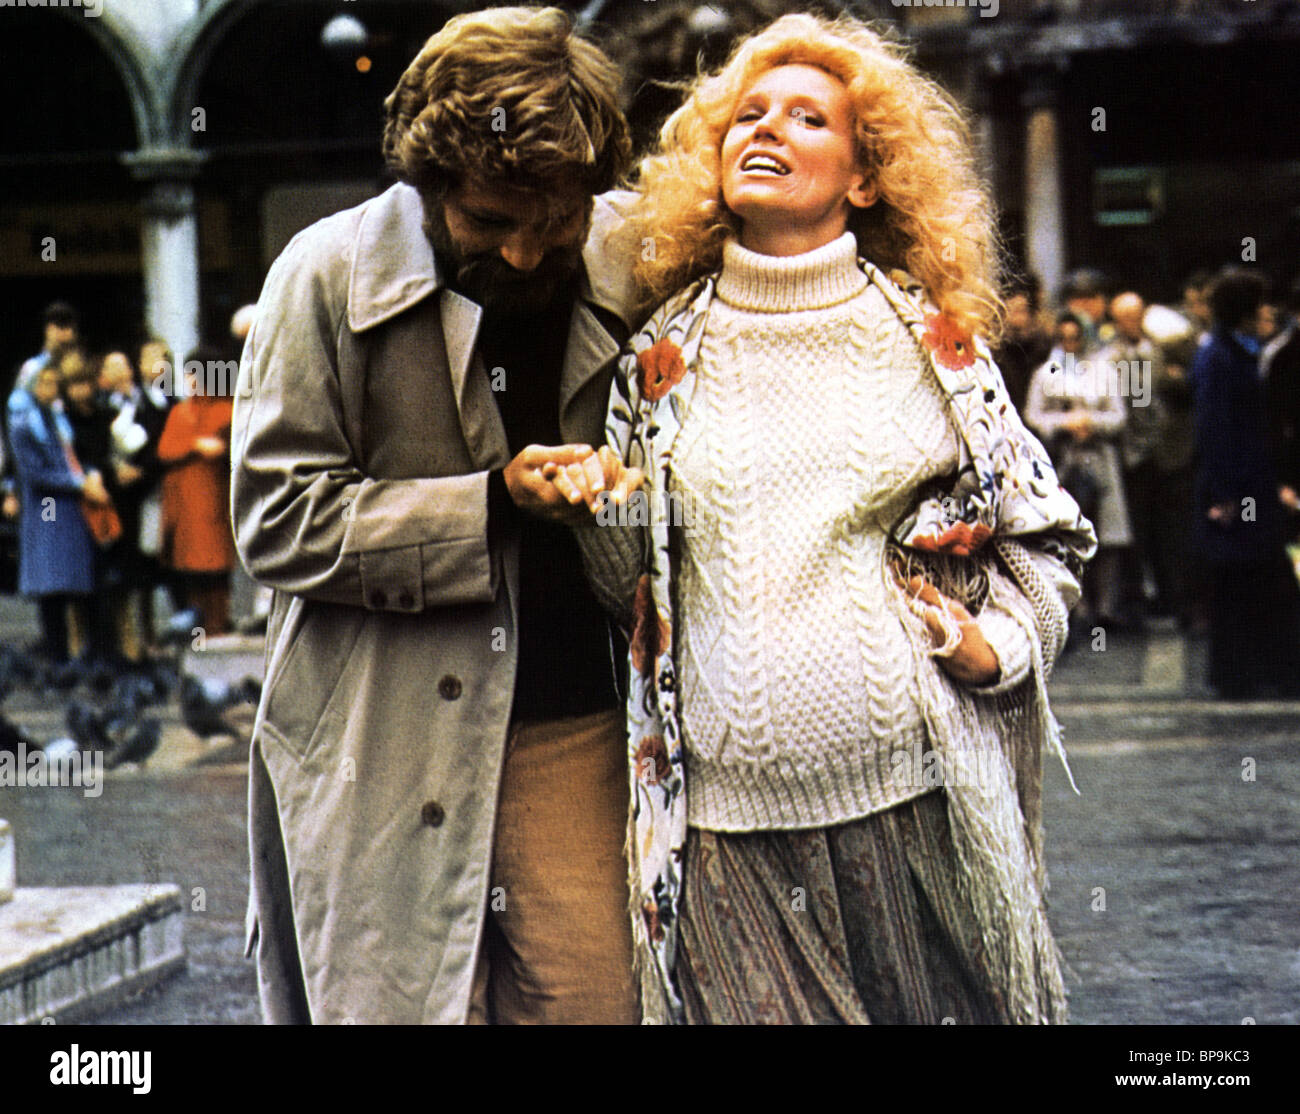 GEORGE SEGAL, SUSAN ANSPACH, BLUME IN LOVE, 1973 - Stock Image